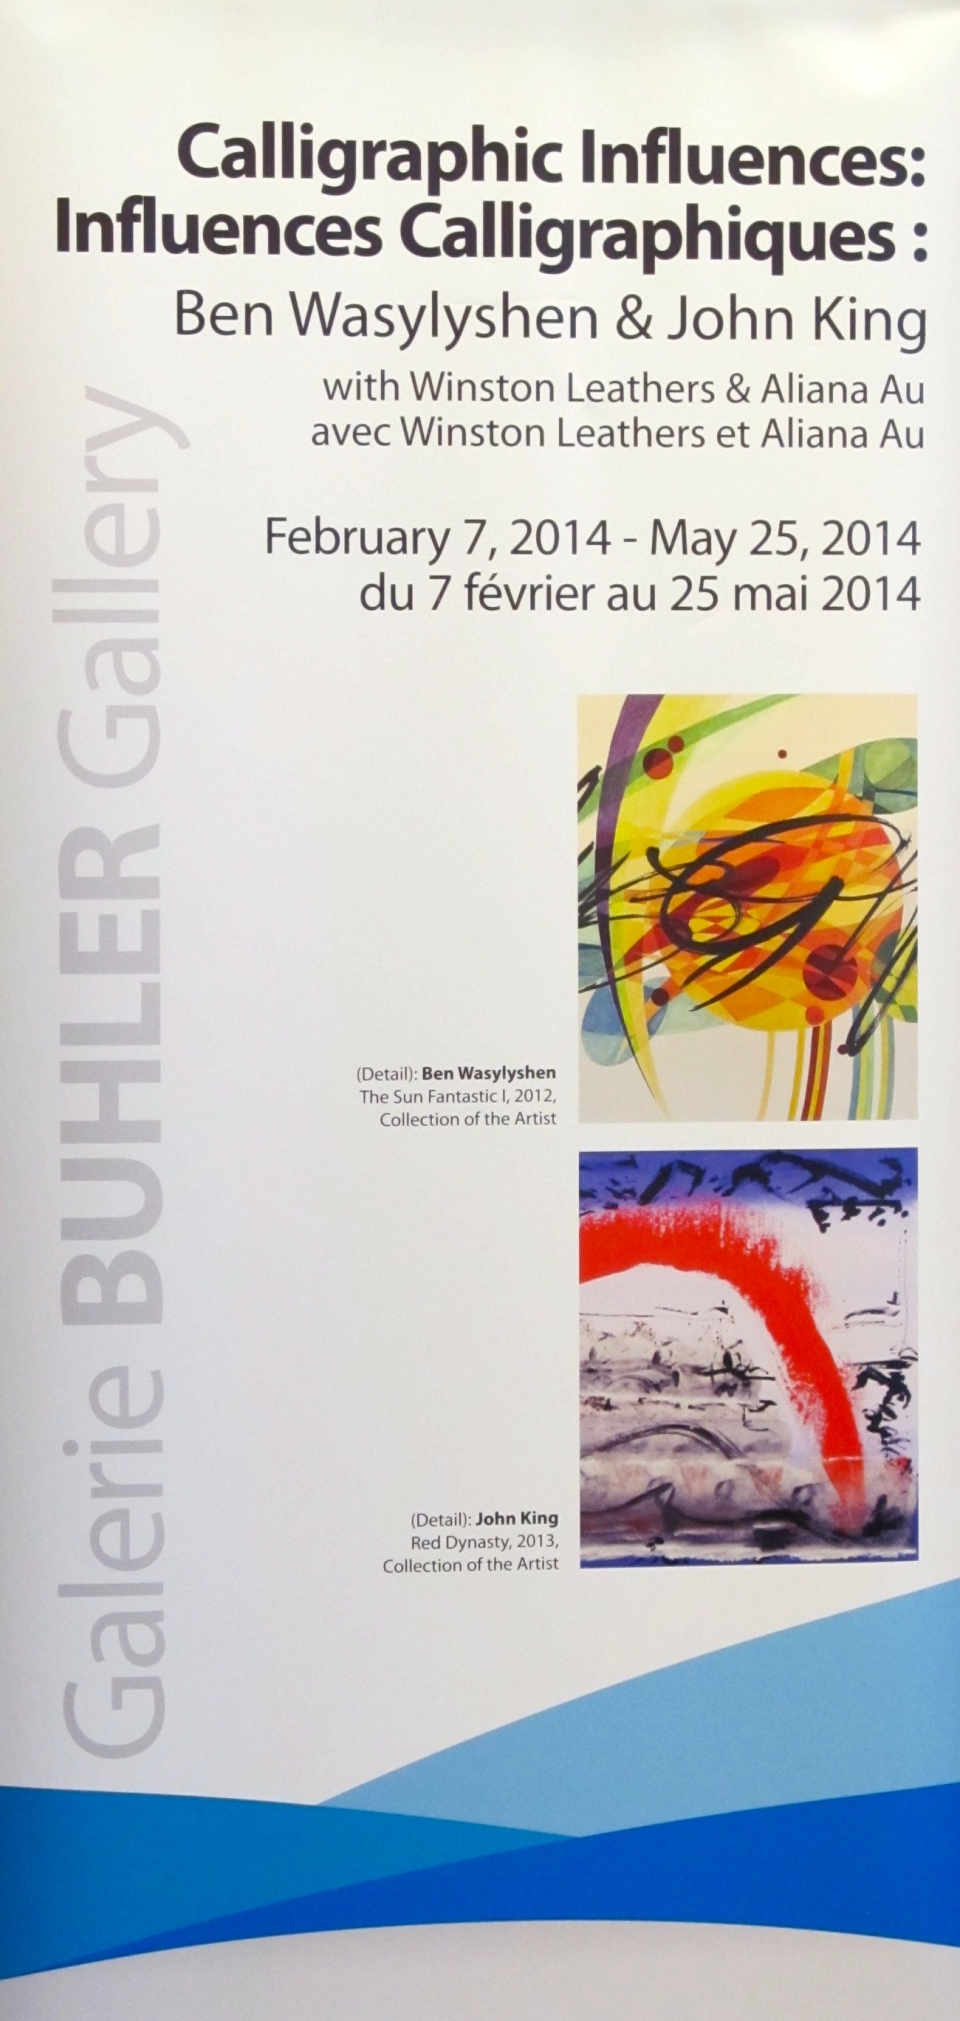 Banner for 'Calligraphic Influences' at the Buhler Gallery